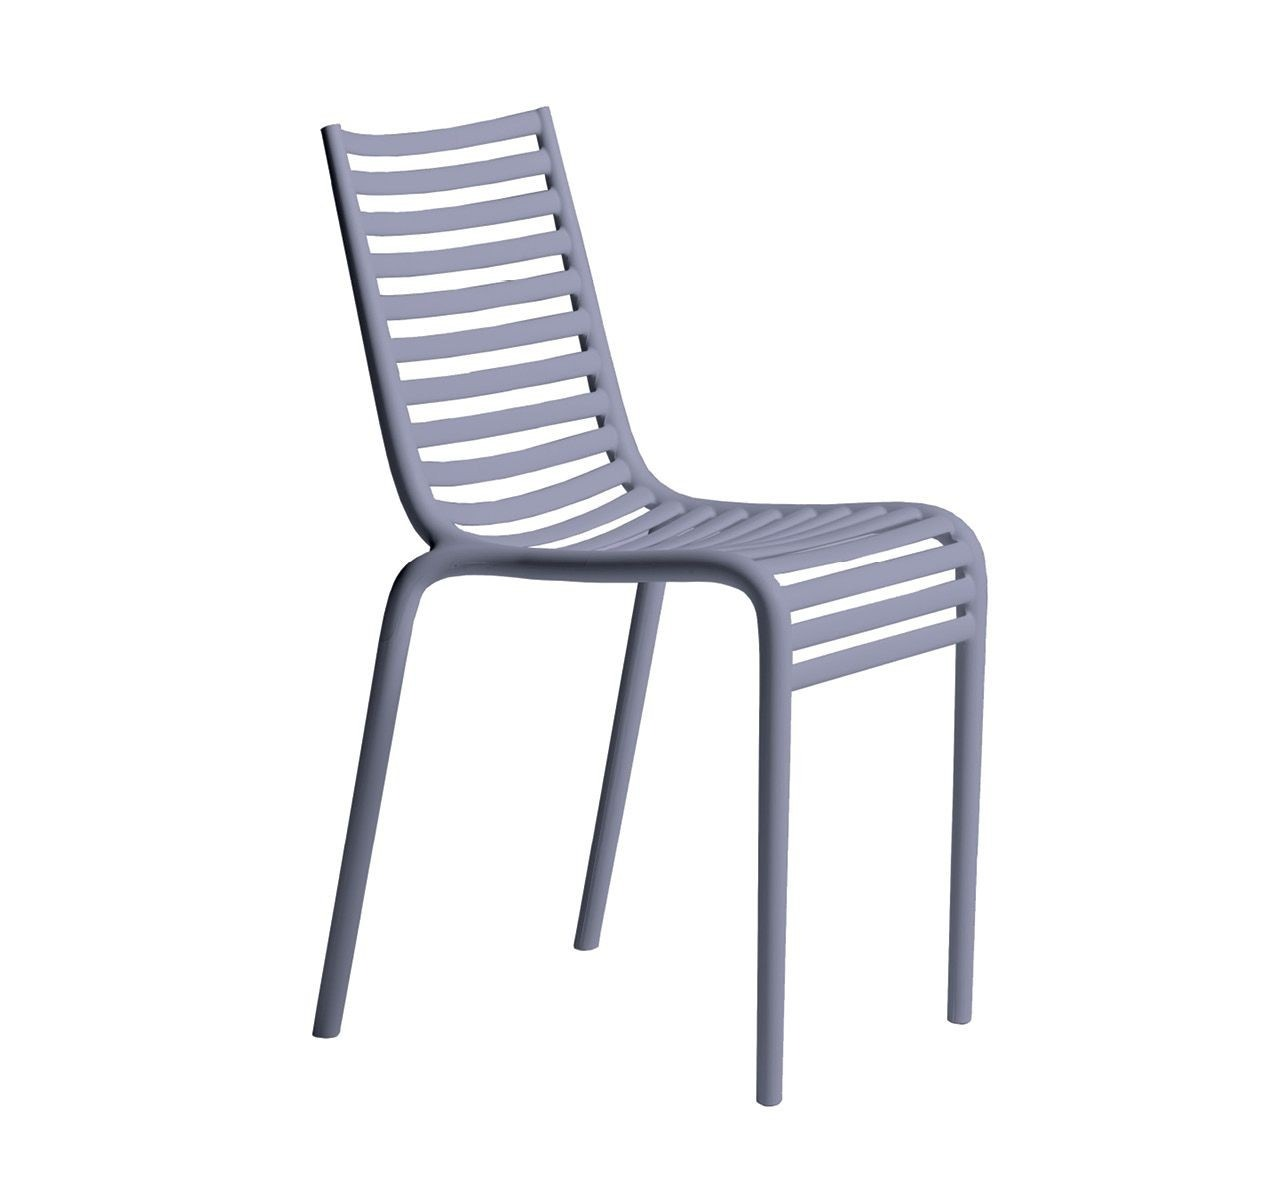 Driade PIP-e Stackable Chair (Priced Each, Sold in Sets of 4)